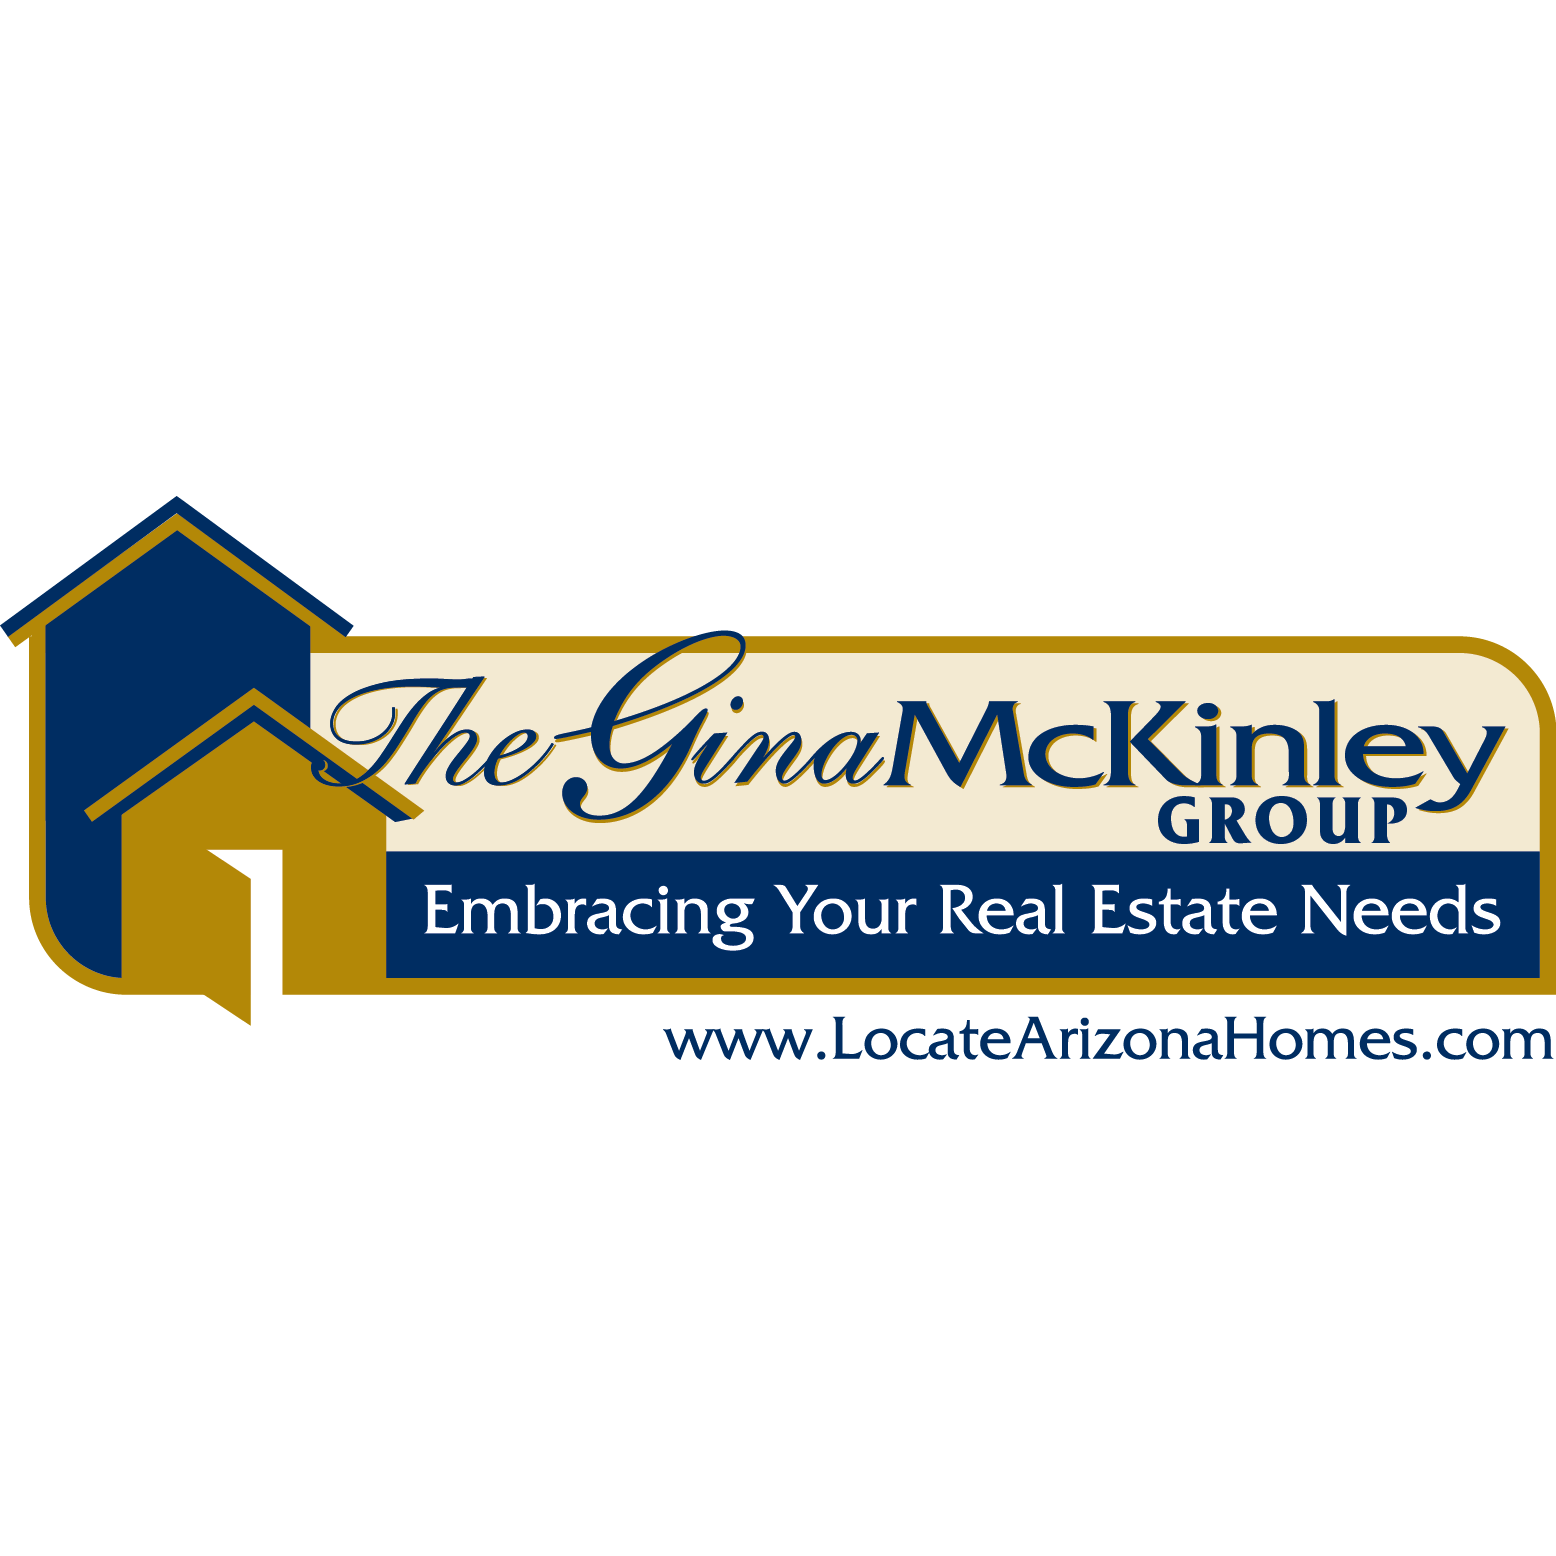 The Gina McKinley Group